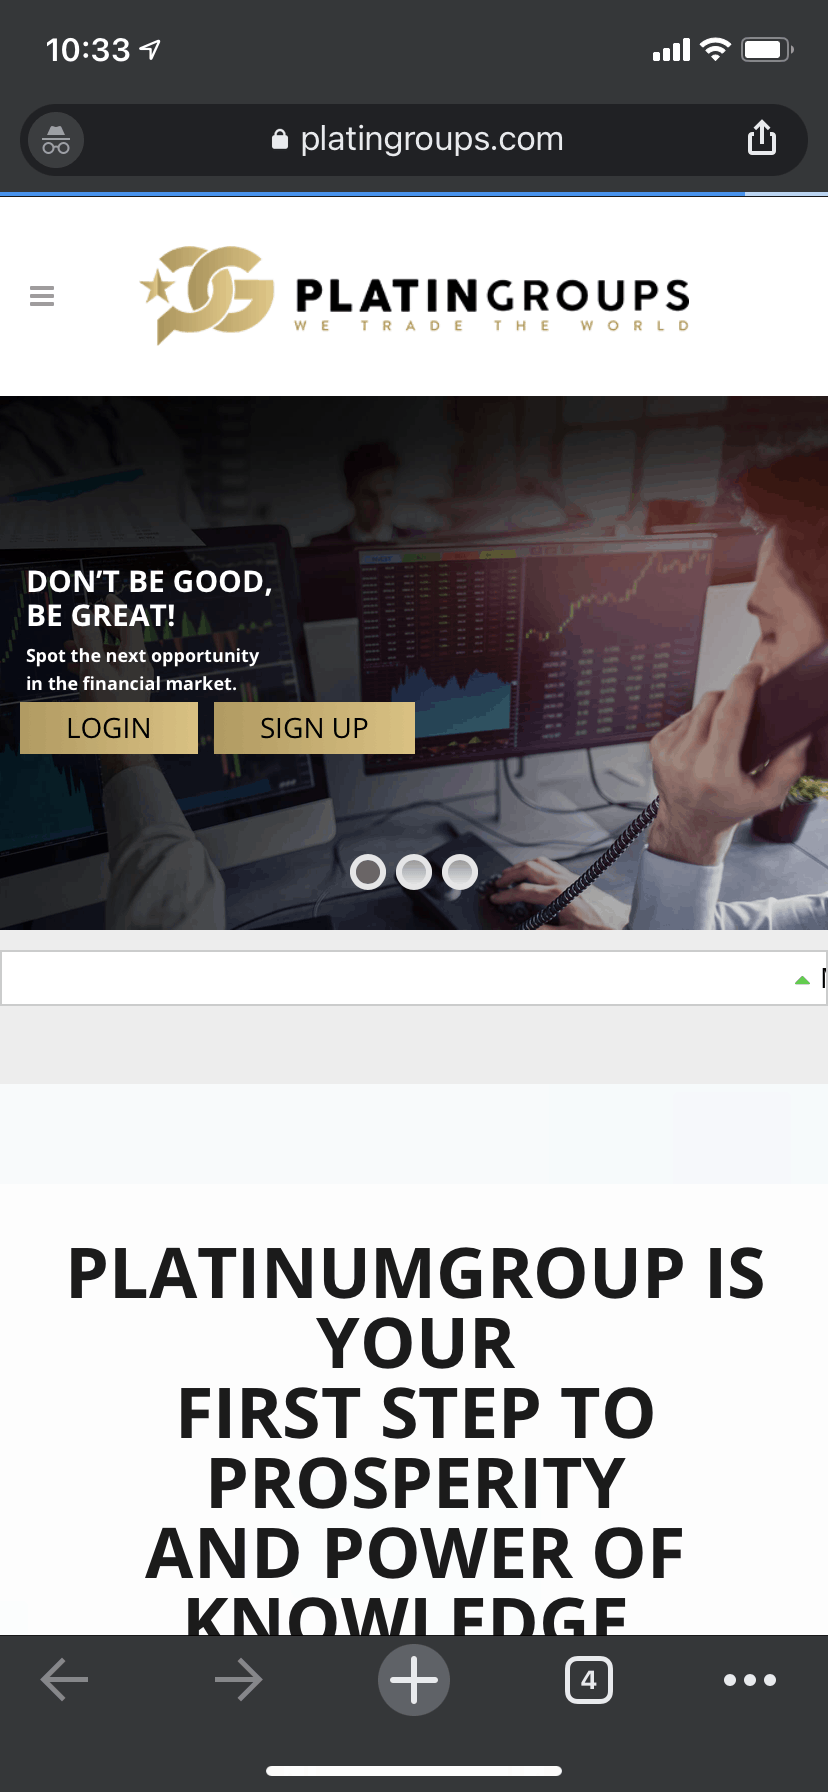 Scammed By Platingroubs